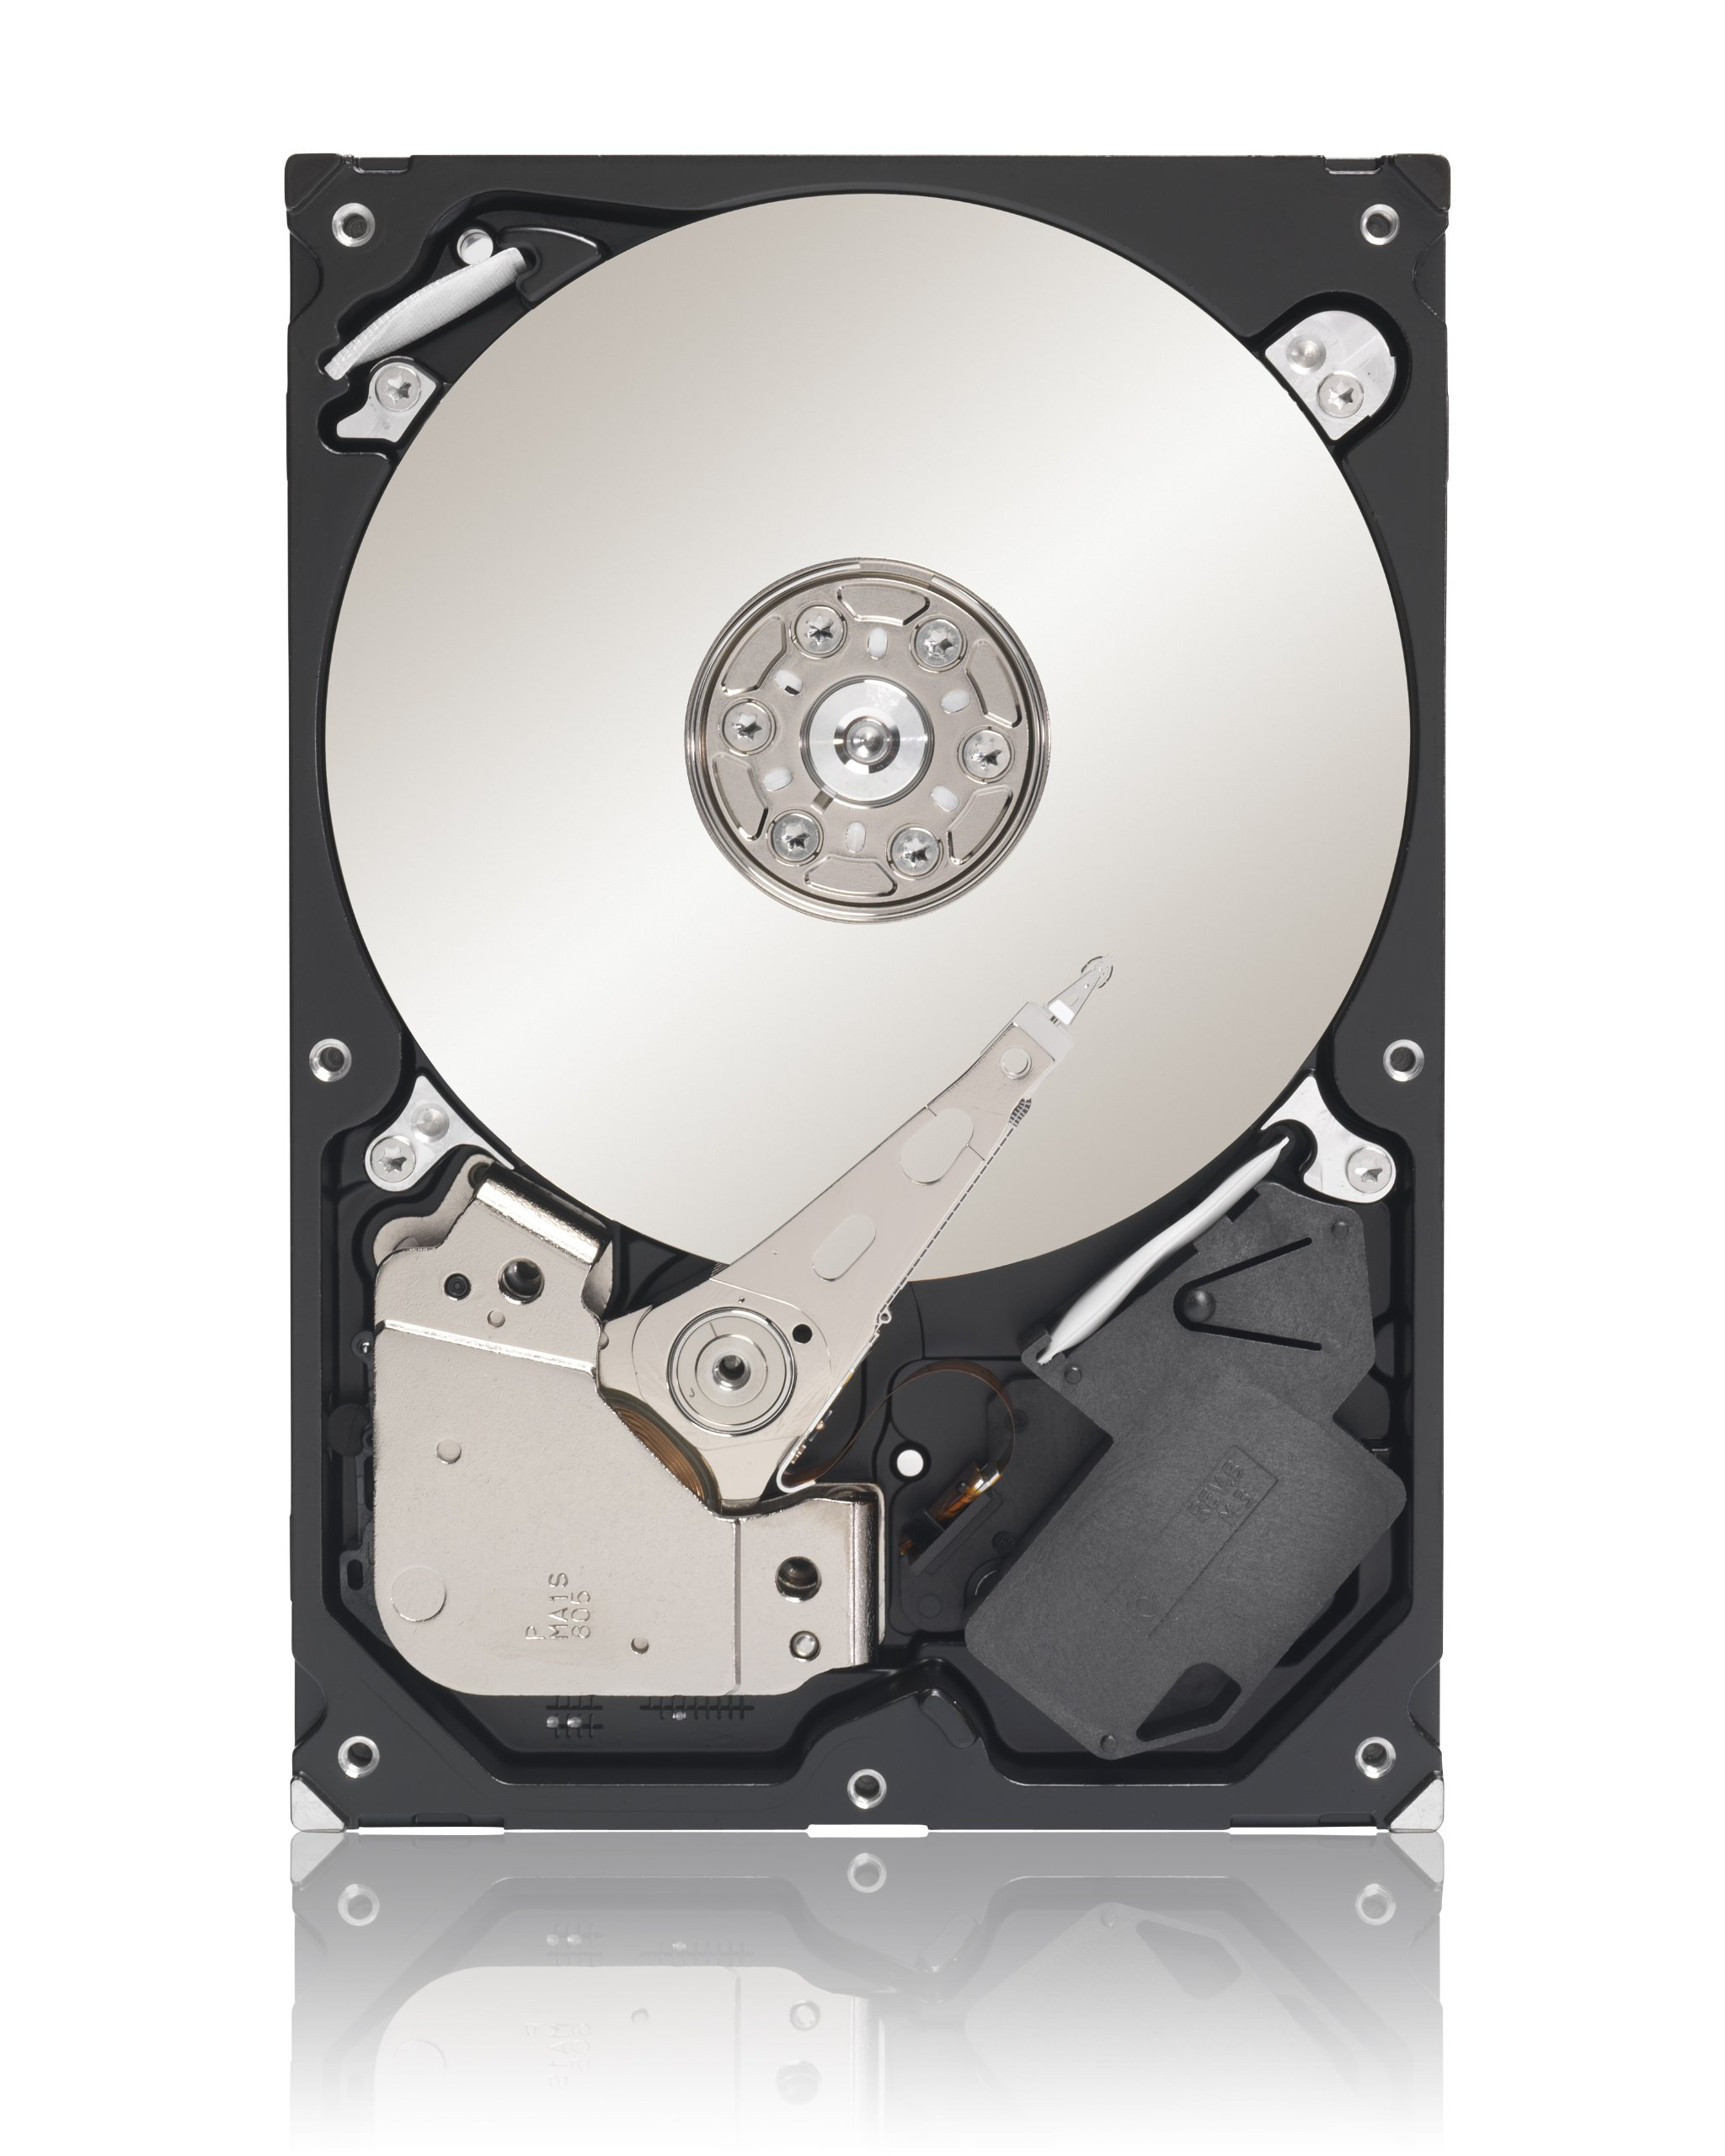 Seagate Barracuda 7200.12 160 GB 7200 RPM SATA 6Gb/s NCQ 8MB Cache 3.5 Inch Internal Bare Drive ST3160316AS by Seagate